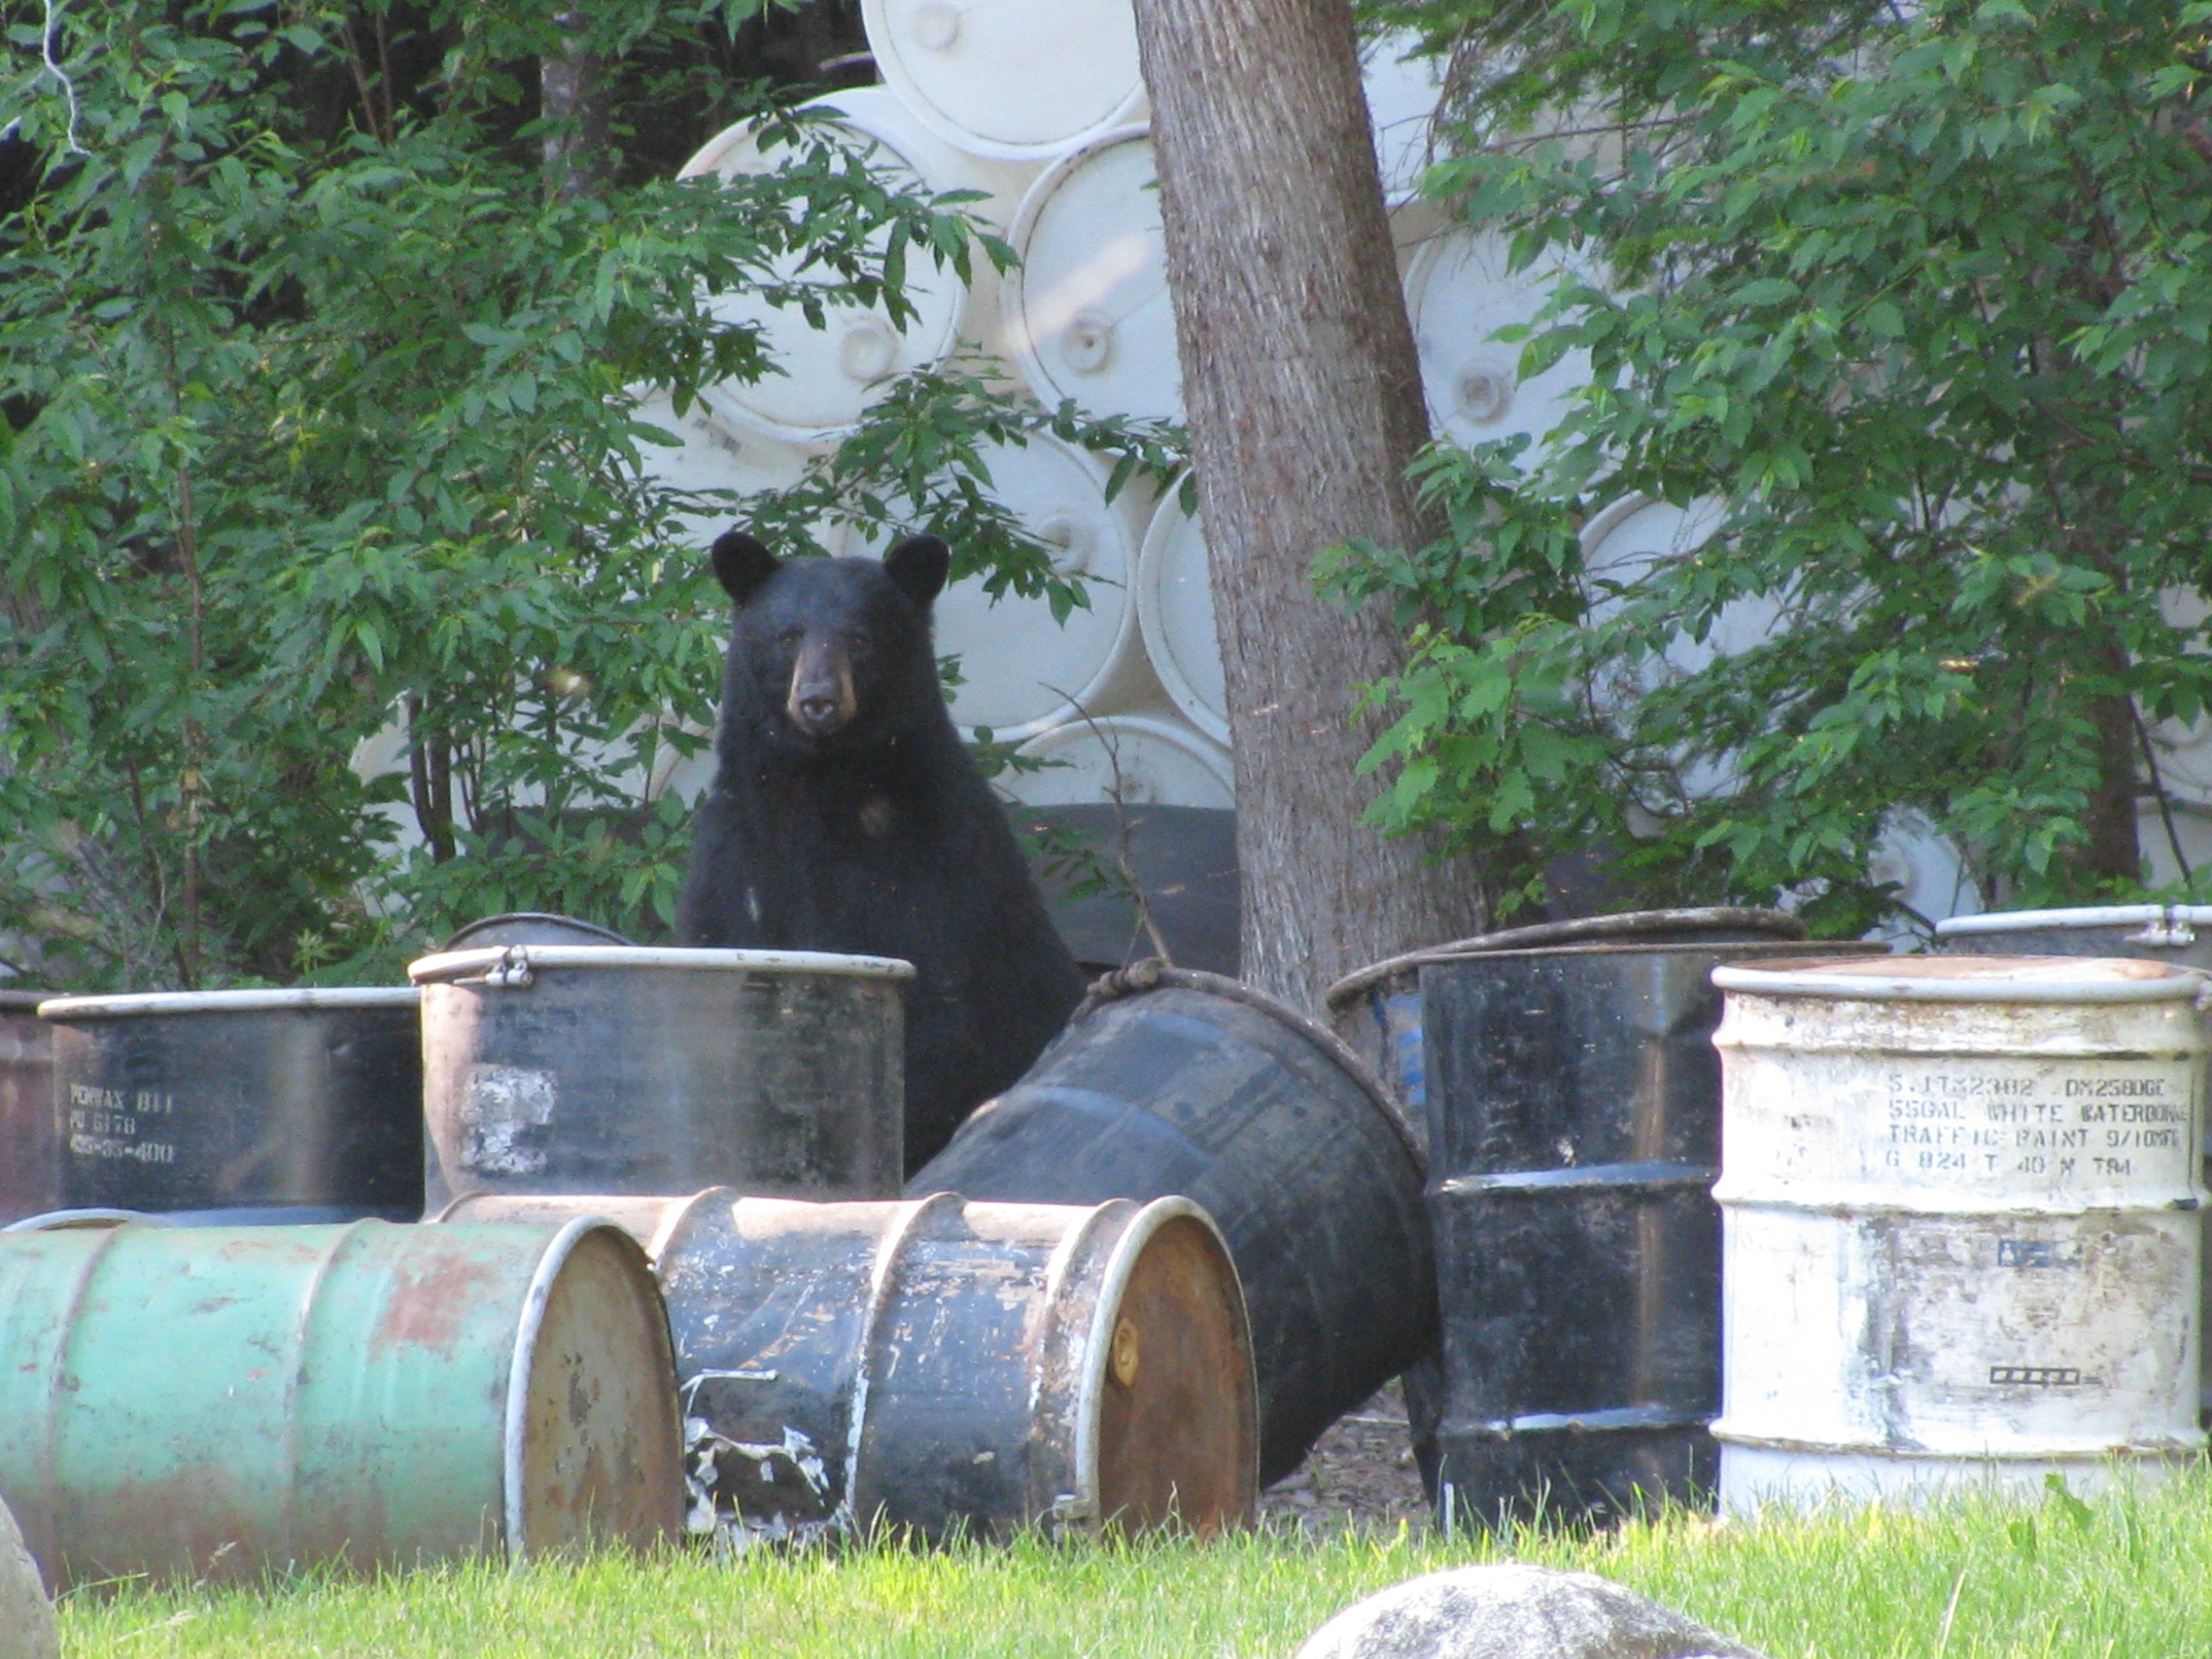 Our neighbors frequently visit us for a tasty summer snack...